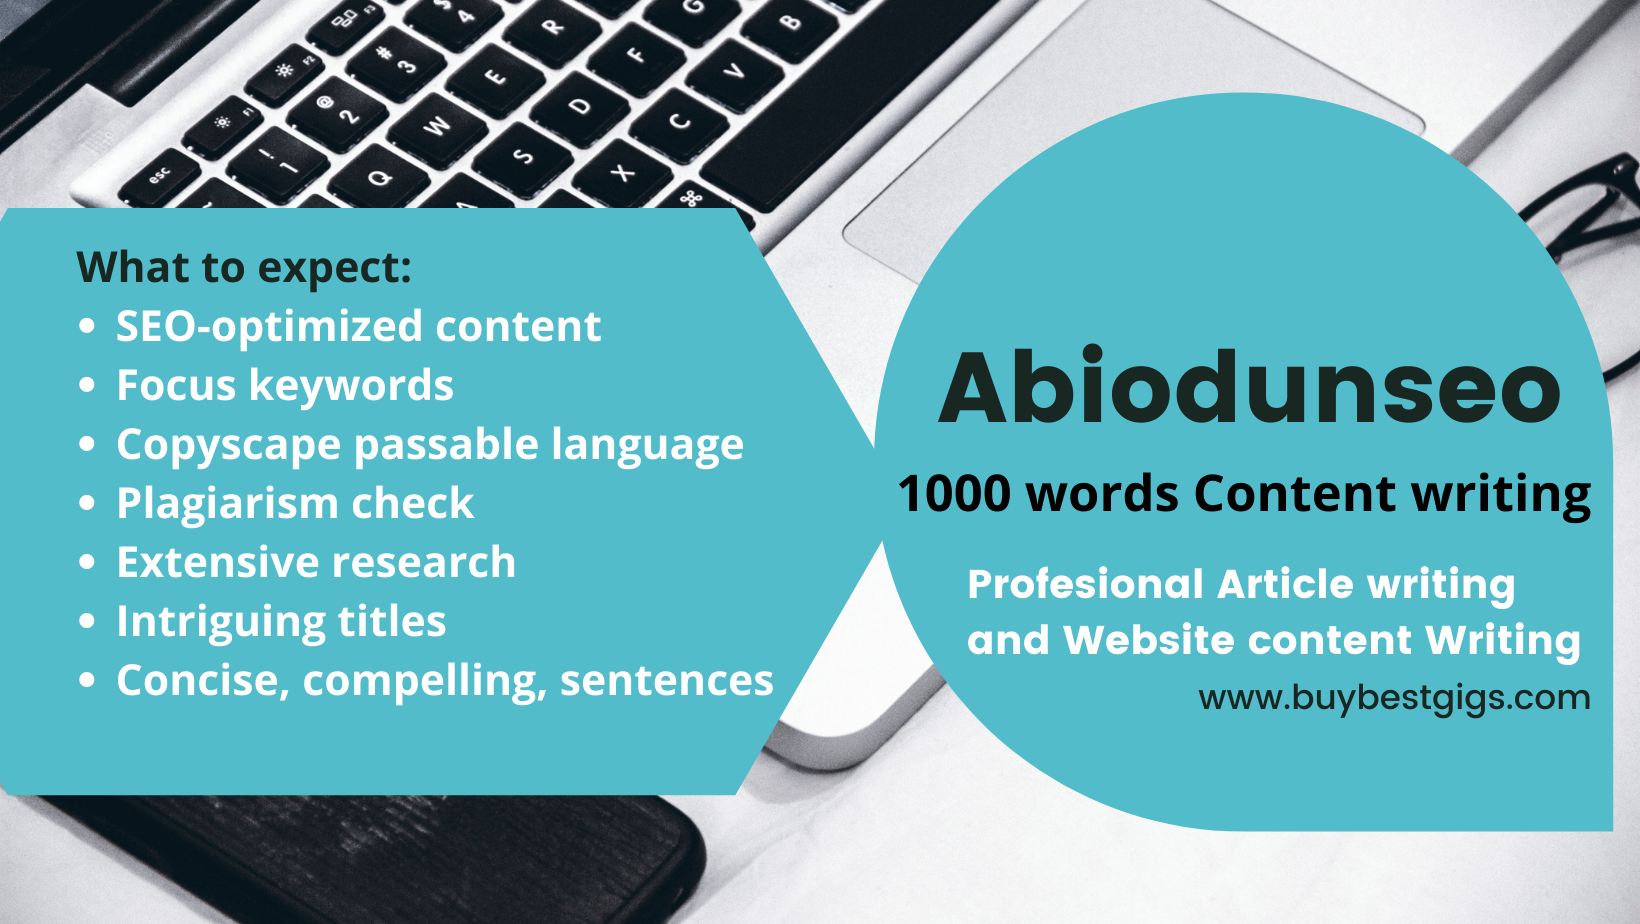 I will write 1000 words high quality SEO articles, blog posts and website content